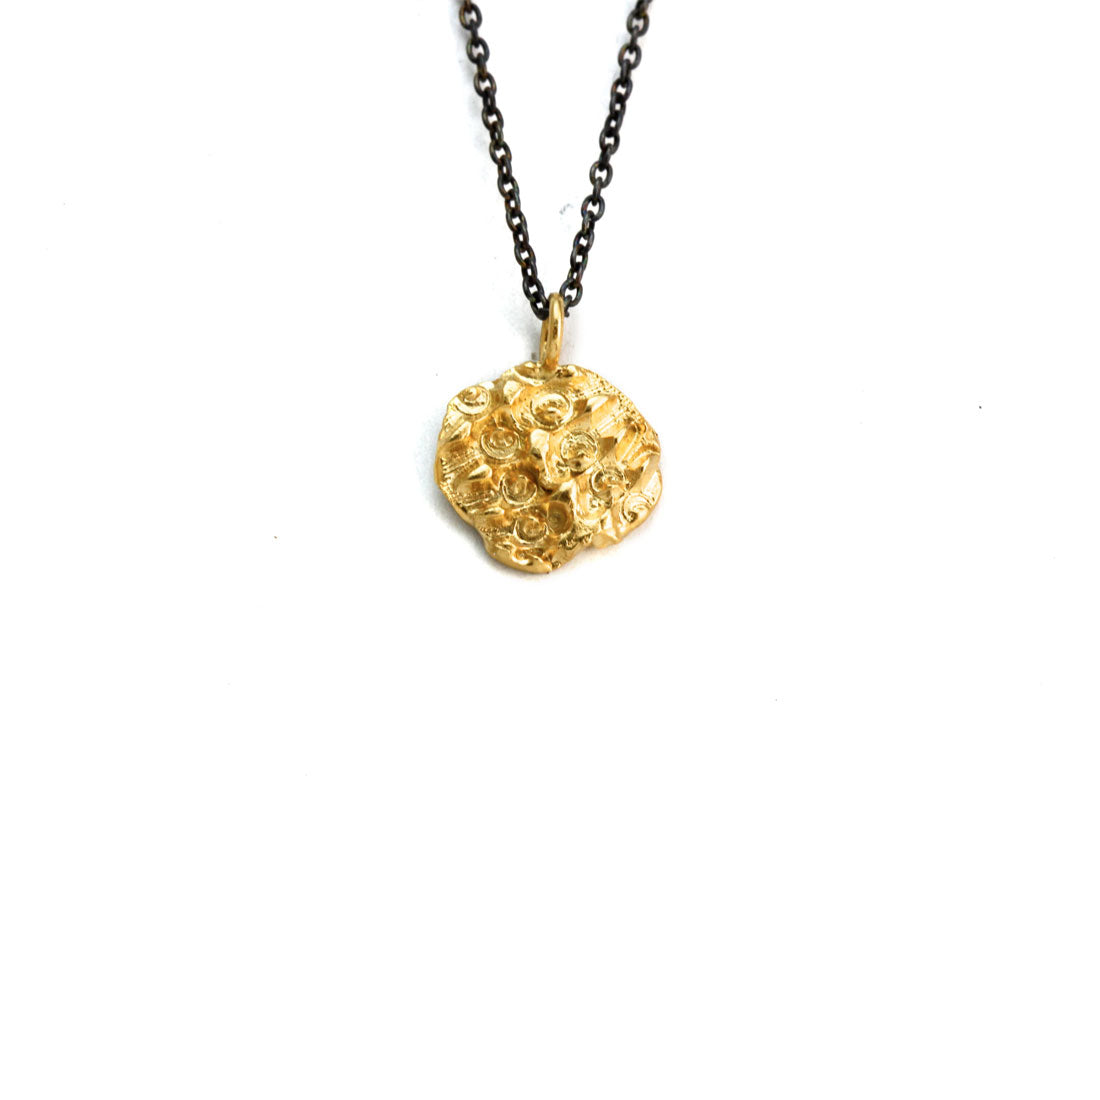 Textured gold plated pendant